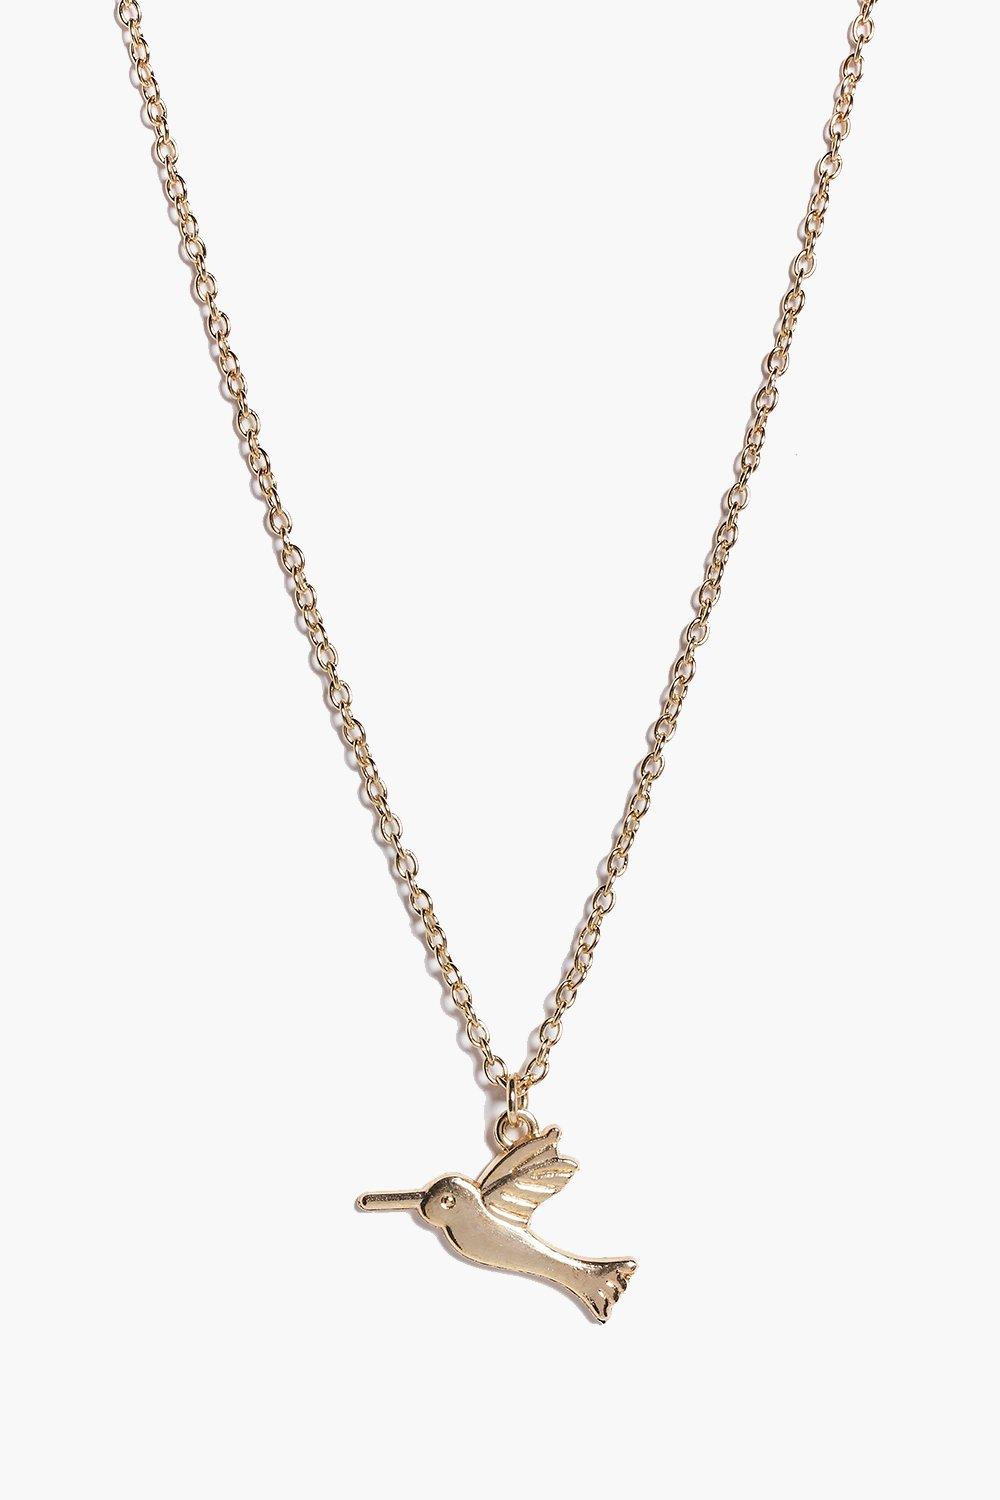 Caroline Skinny Pendant Necklace